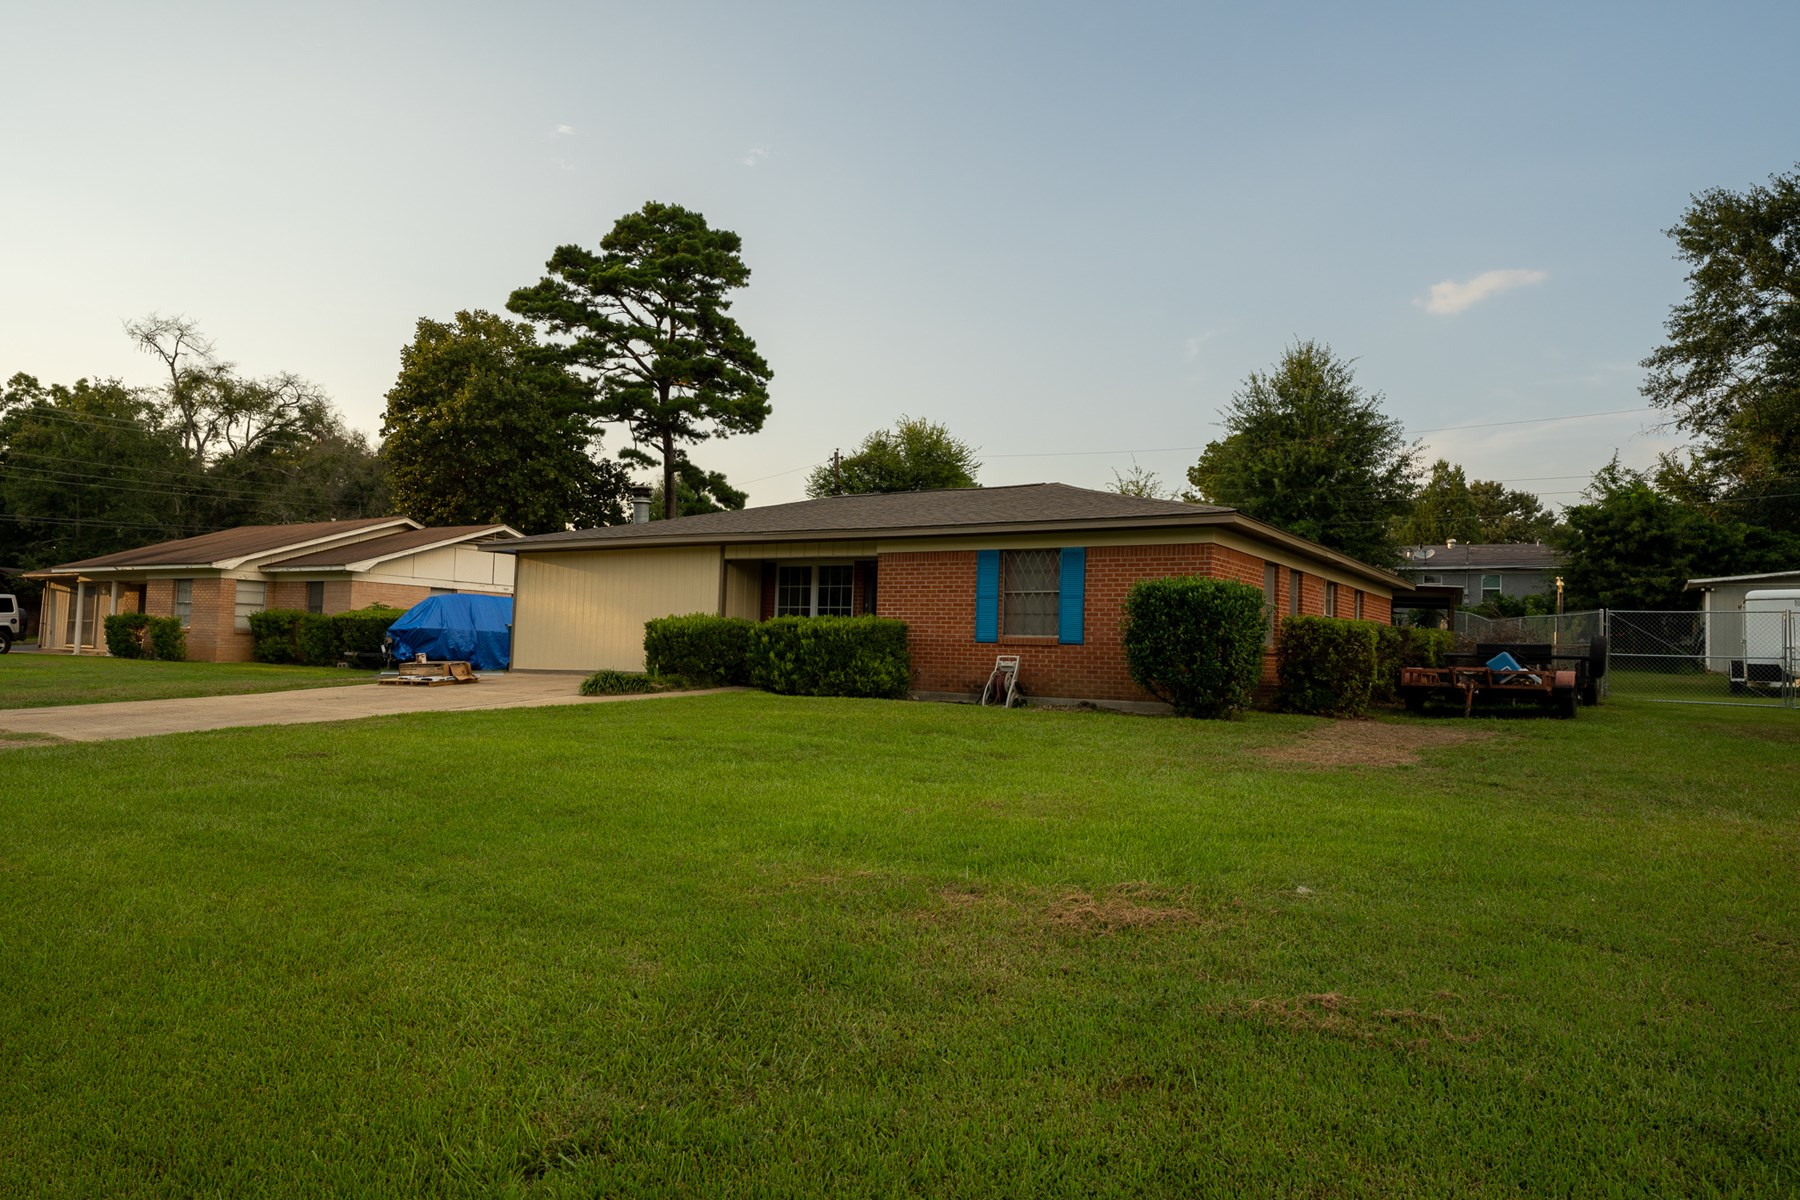 Updated Family Home For Sale in East Marshall, TX!